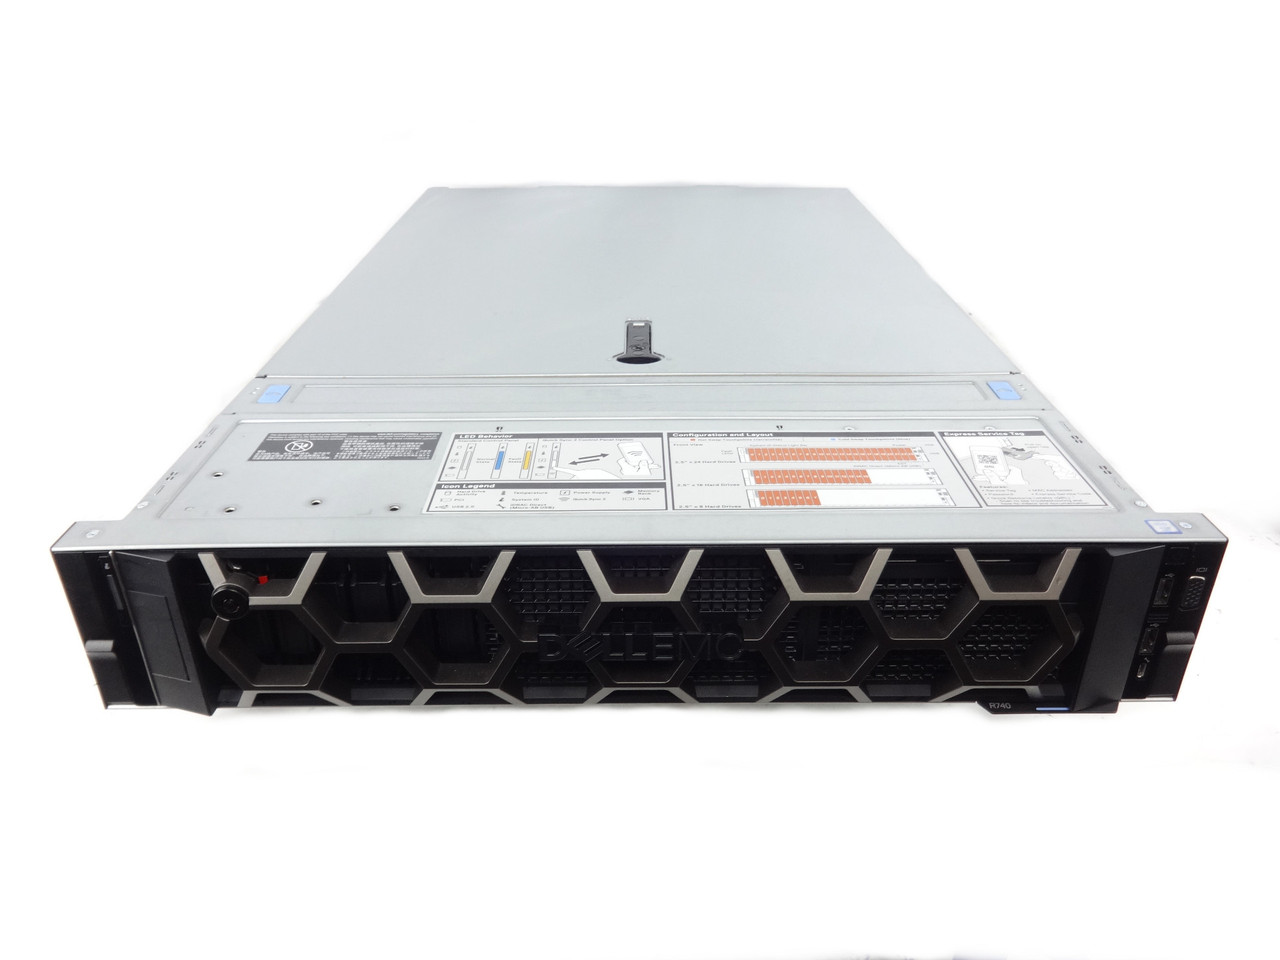 Dell Poweredge R740 8 bay Server with bezel